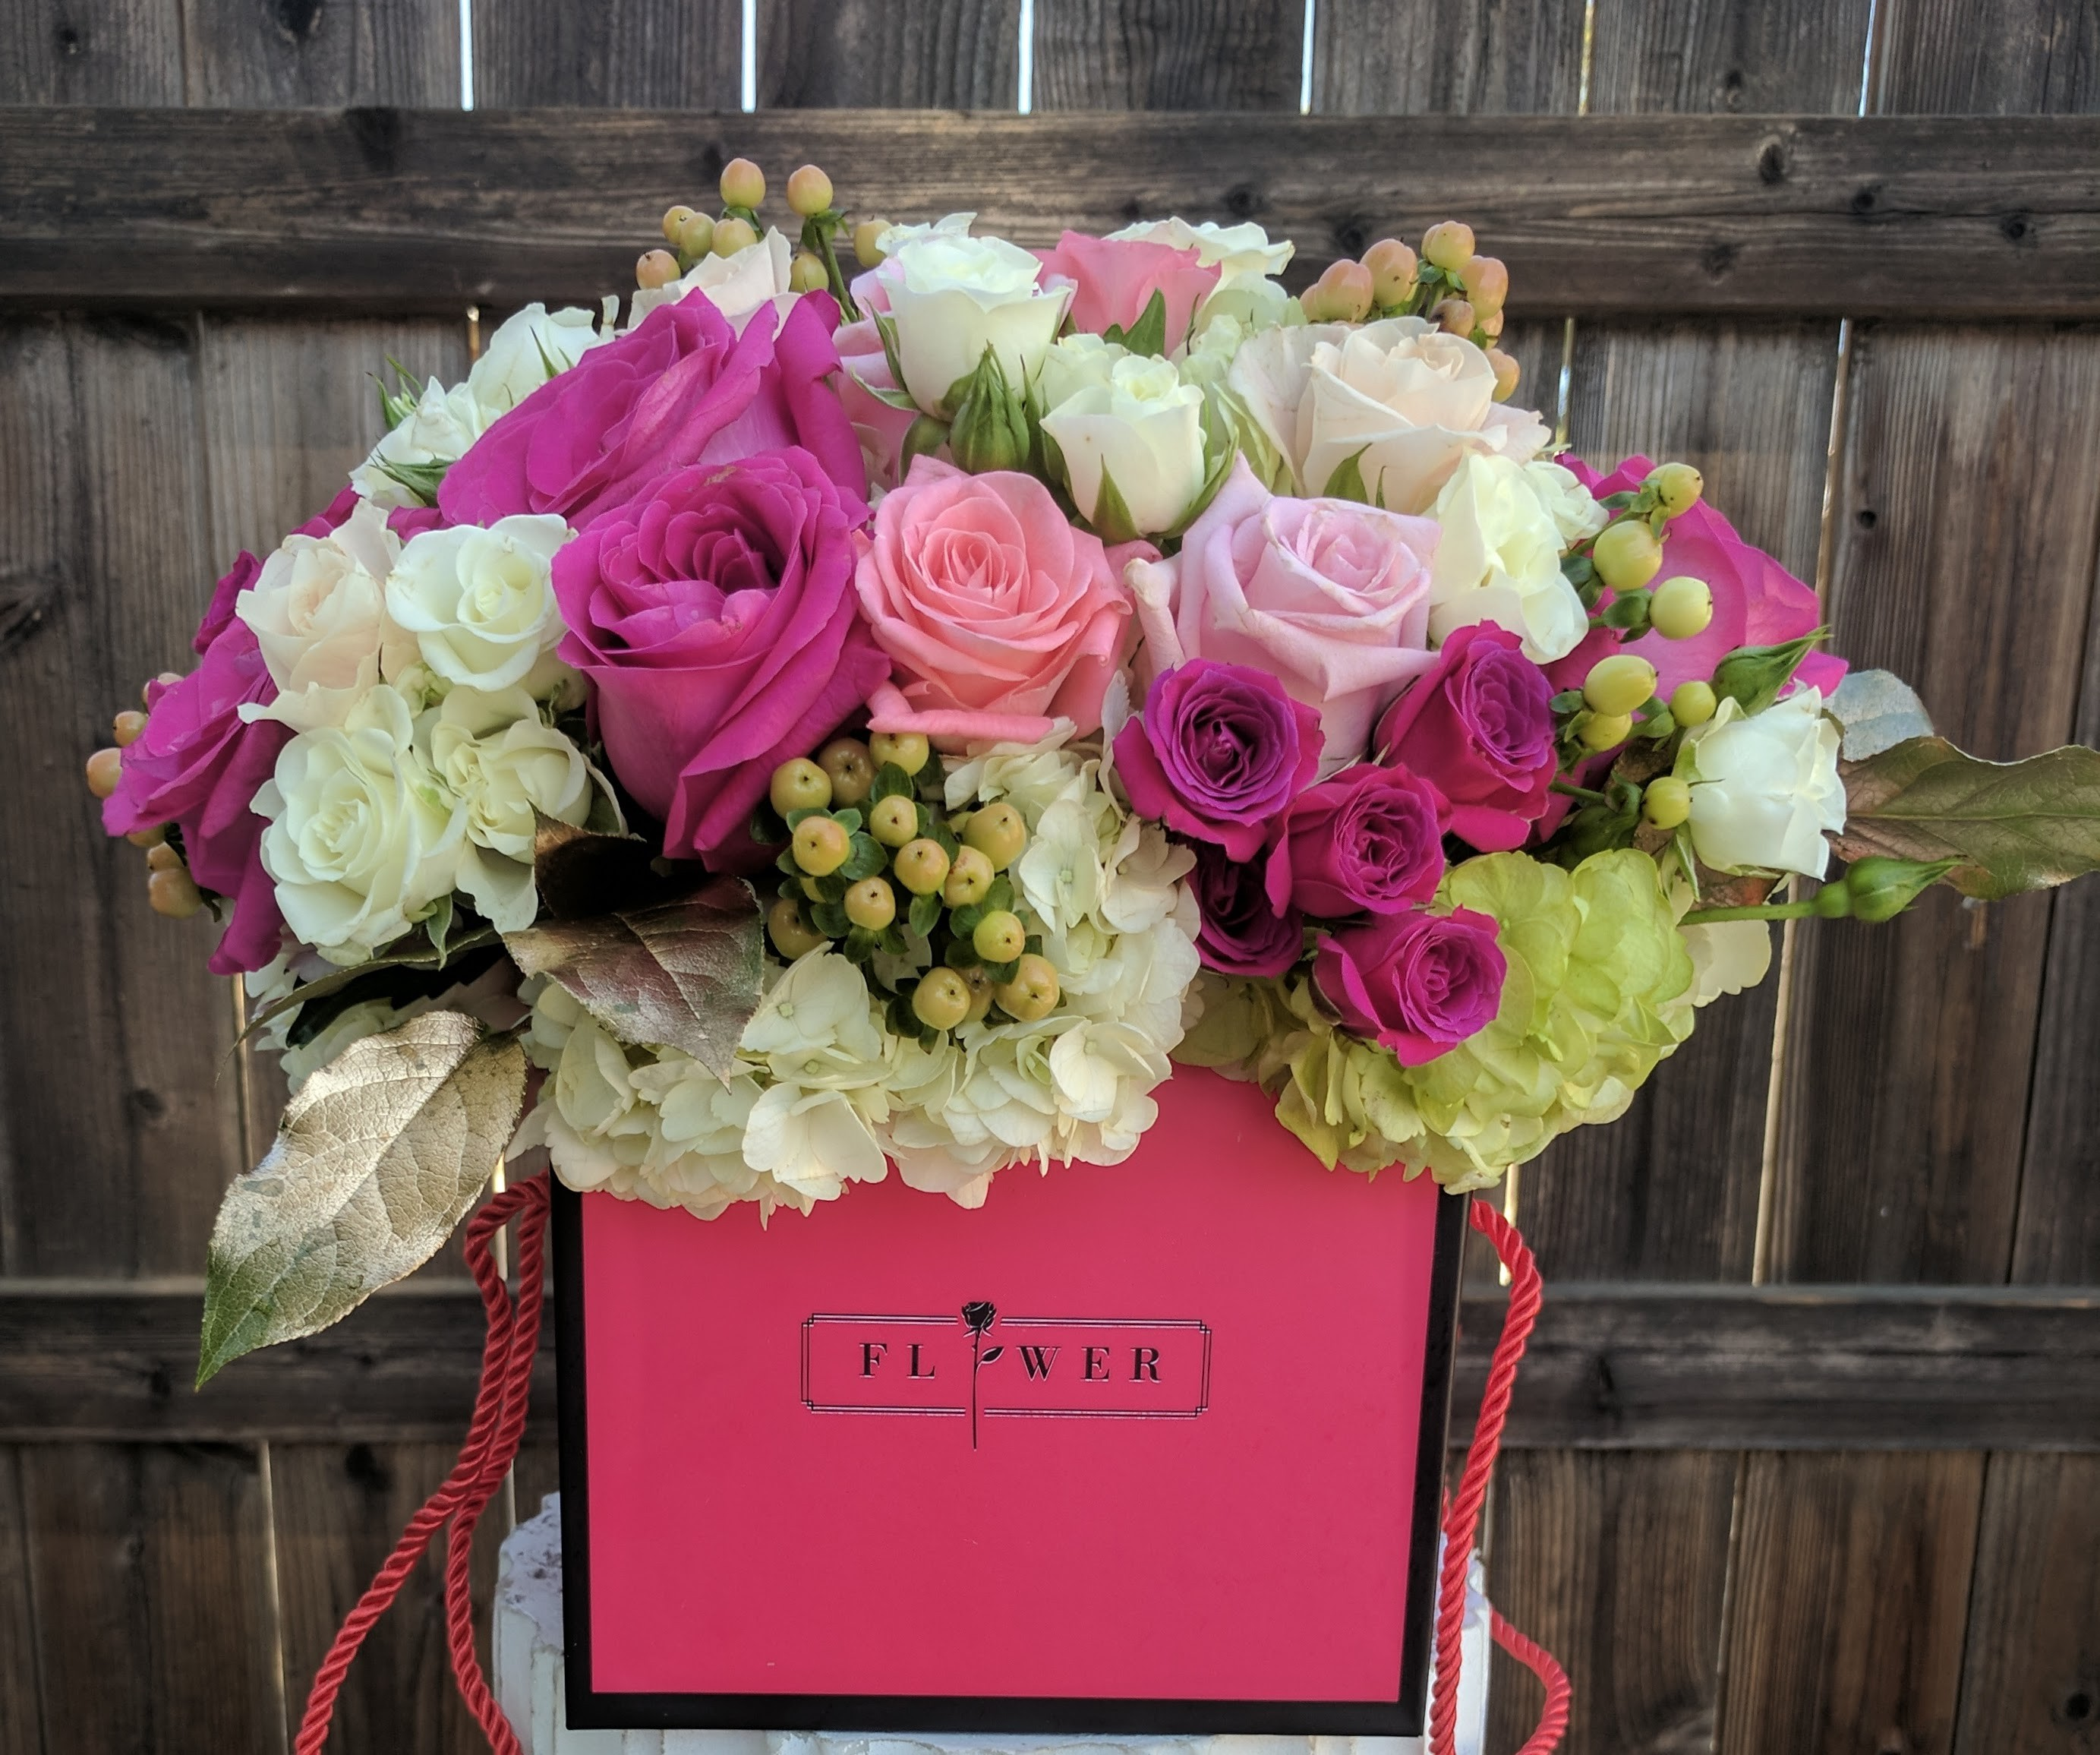 Fabulous Flower Box Let us pick the prettiest one for your special ...